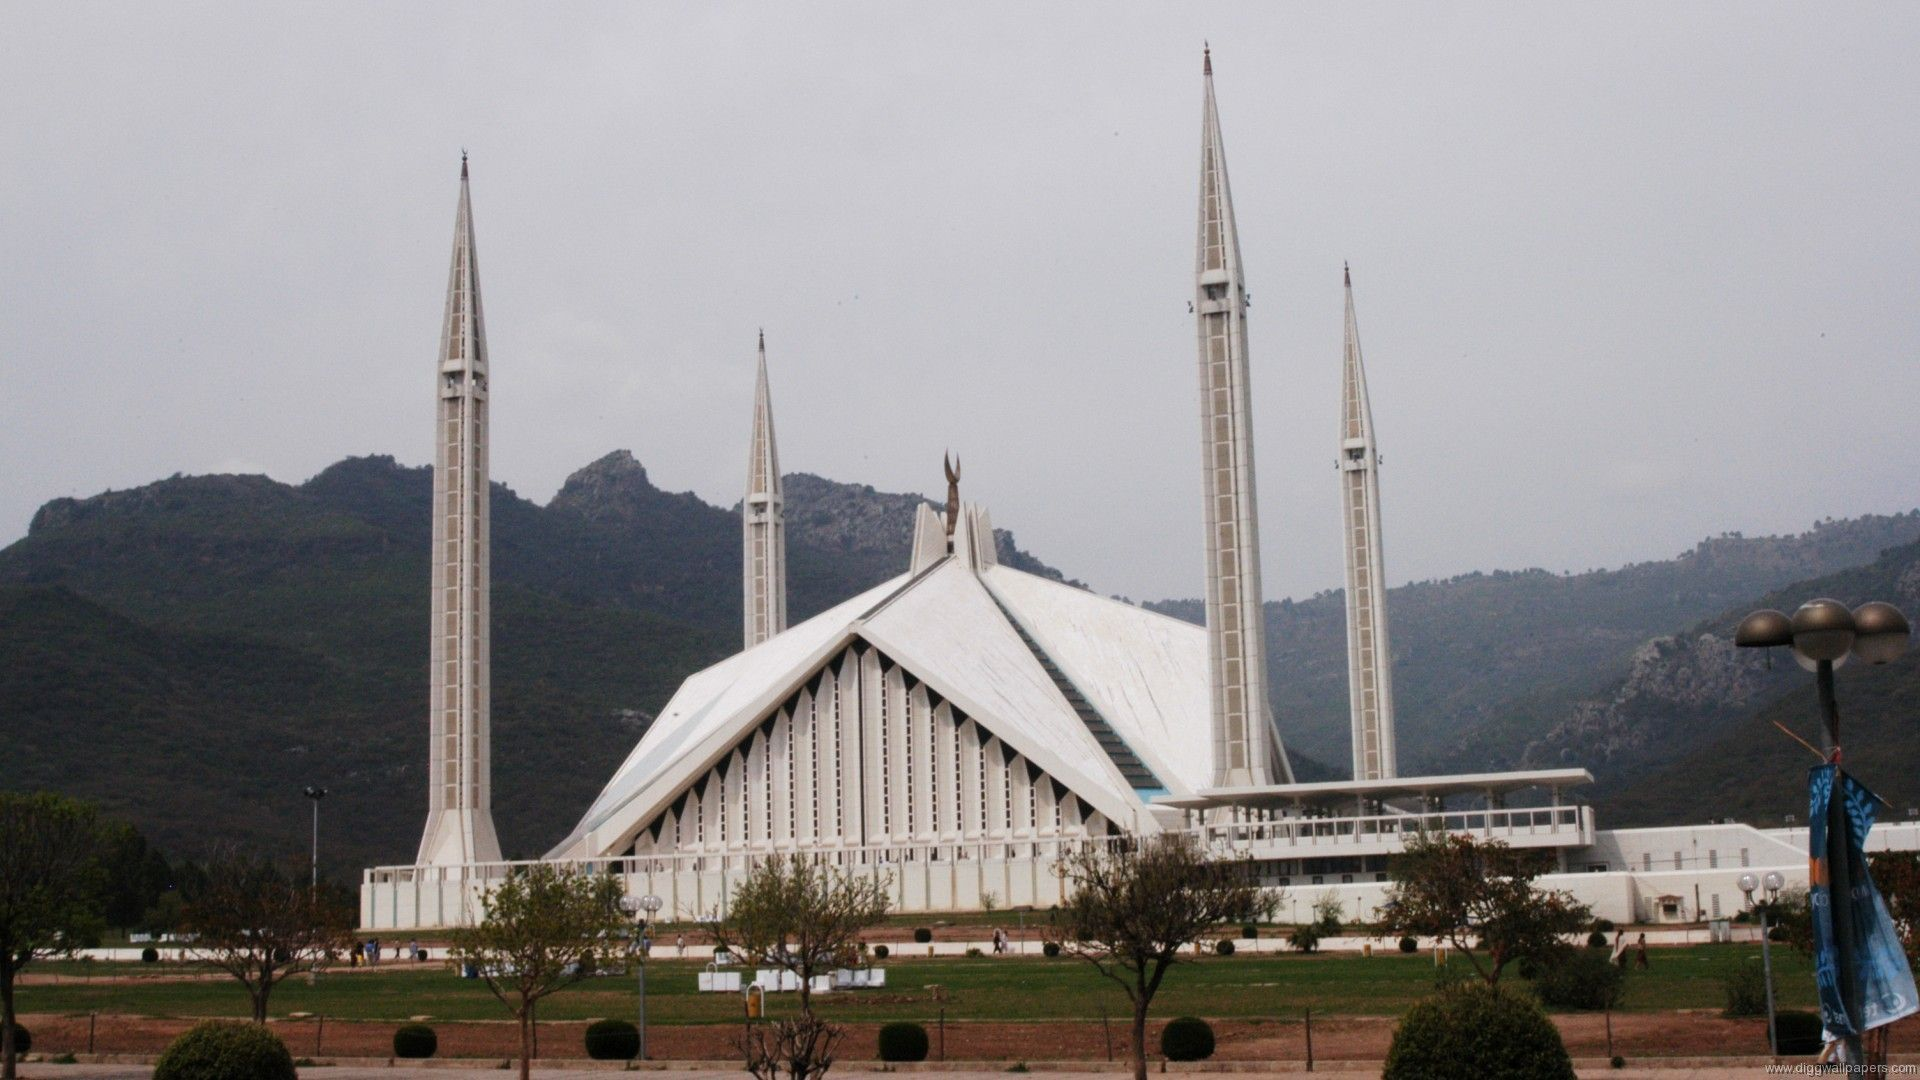 Islamabad Pictures In 2020 Background Hd Wallpaper Hd Wallpaper